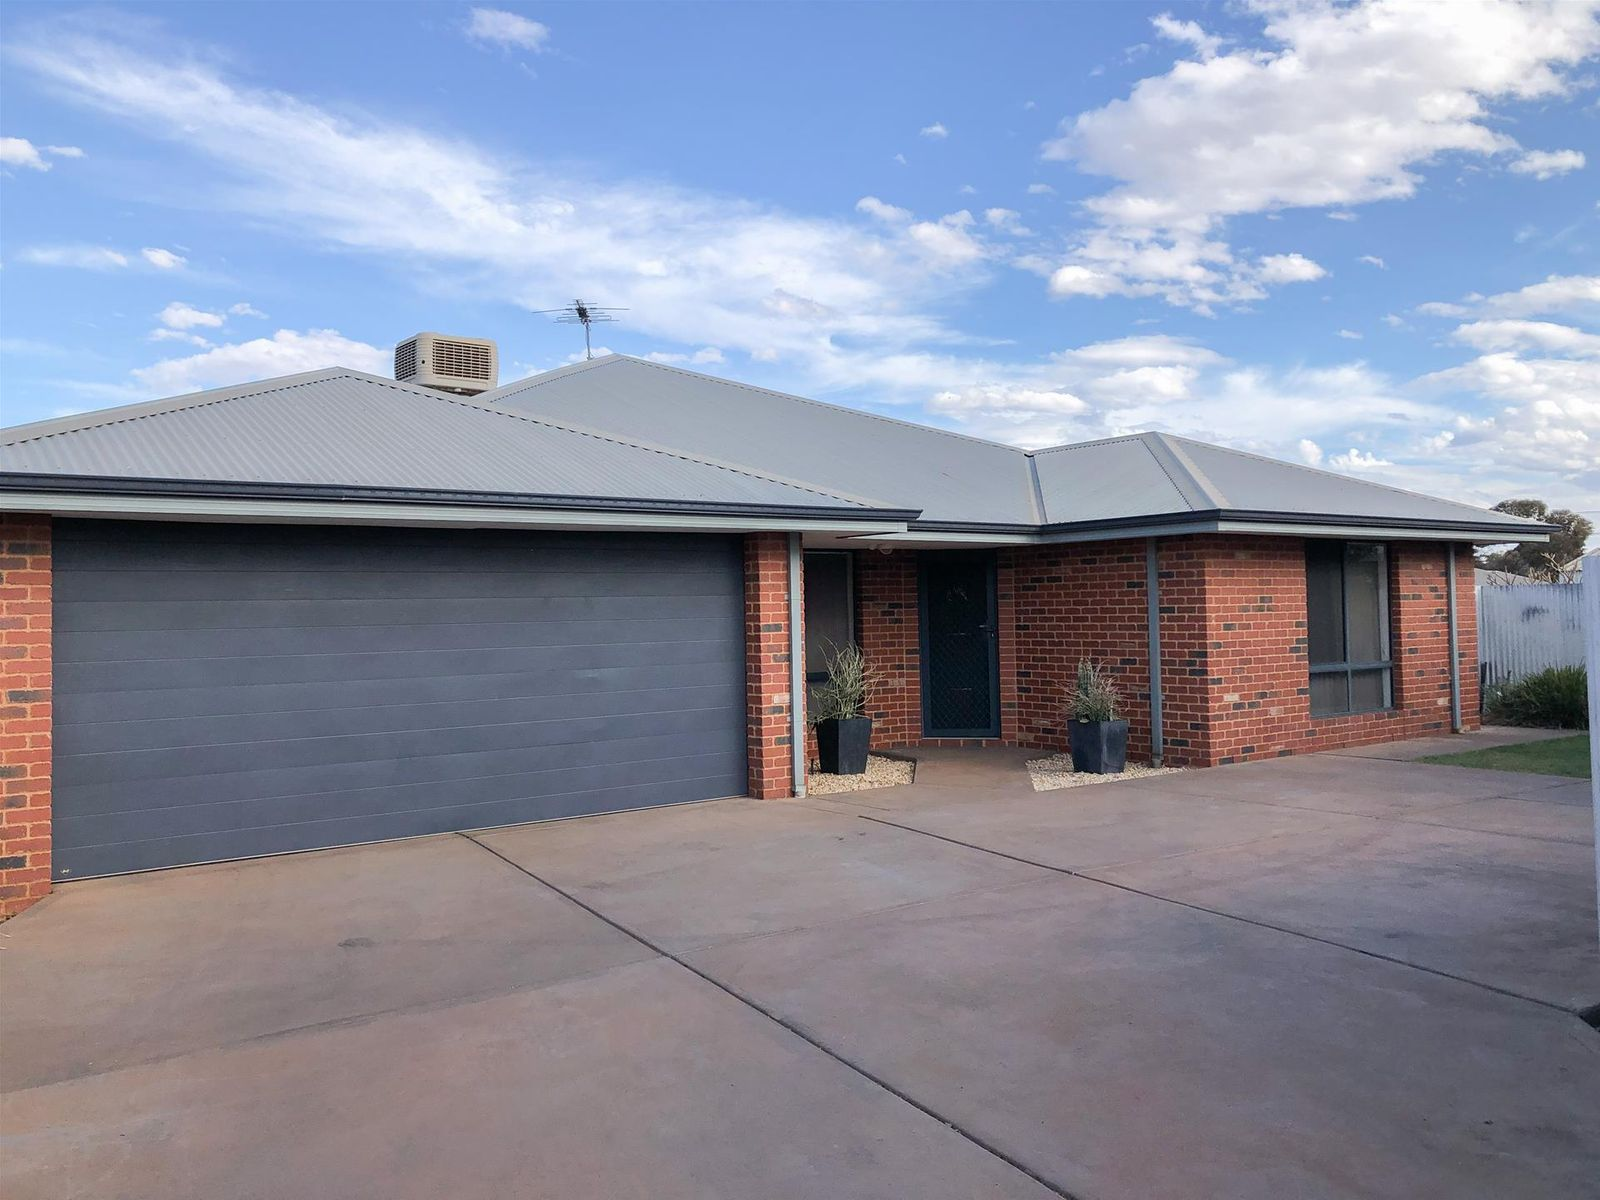 37A Carrington Street, South Kalgoorlie, WA 6430